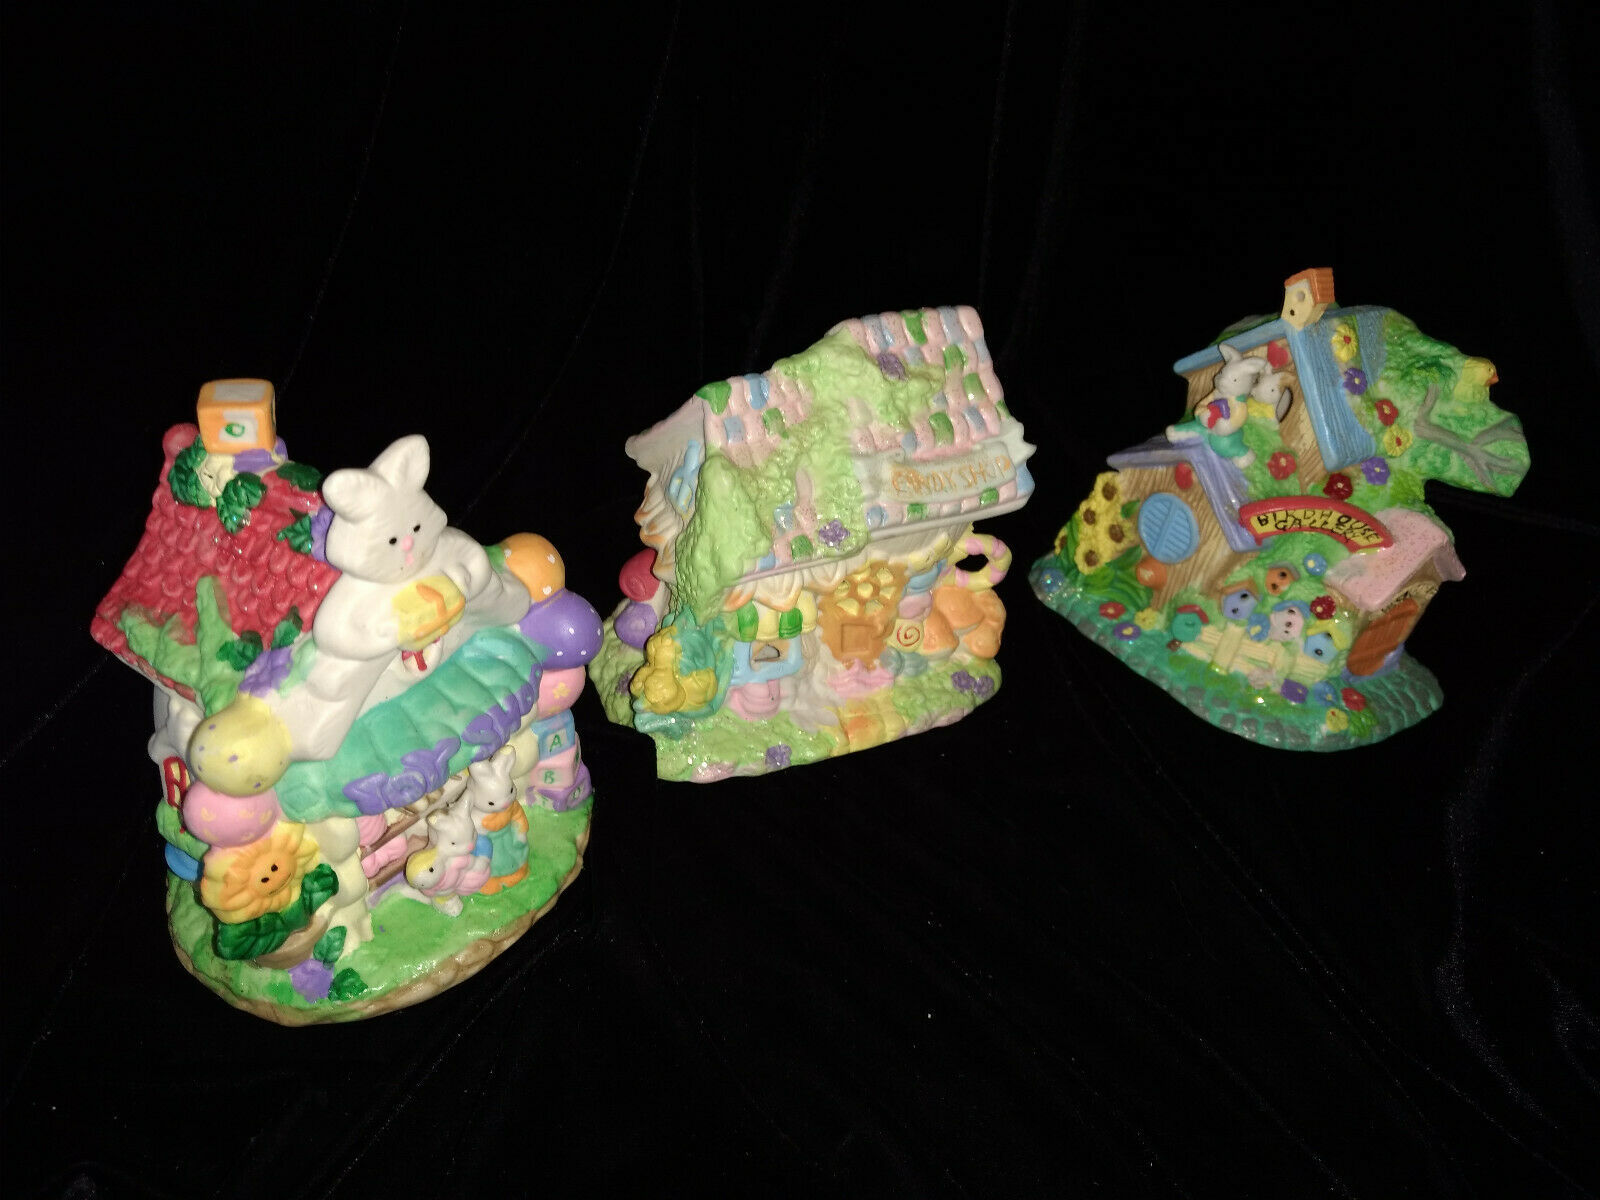 Hoppy Hollow Easter Village Ceramic Houses Set of Three (Lot #4)